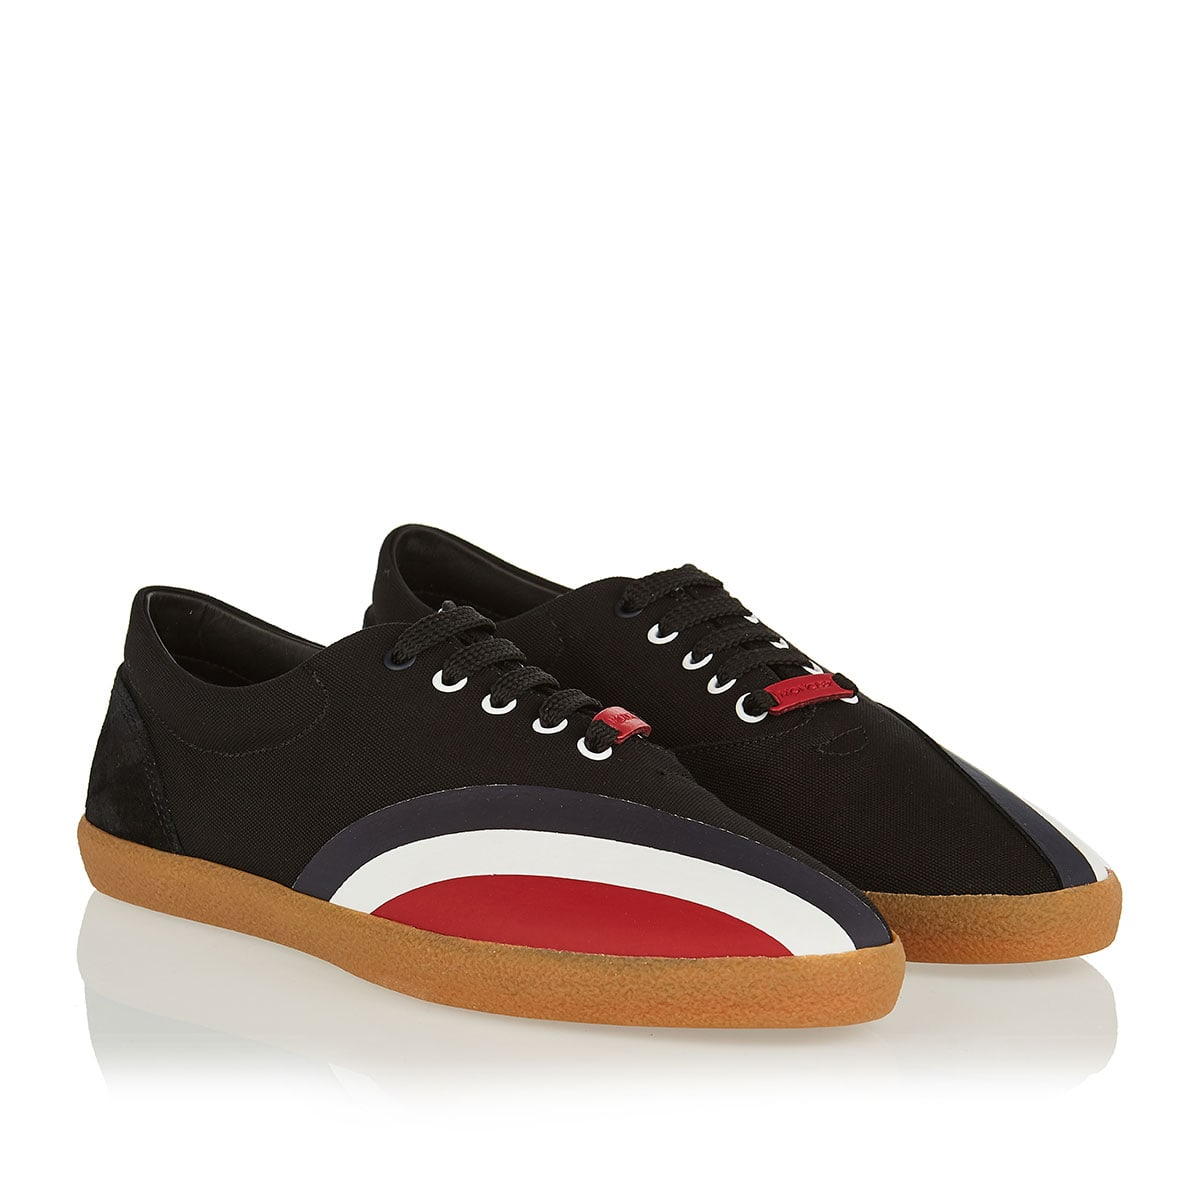 2 Moncler 1952 Regis canvas sneakers